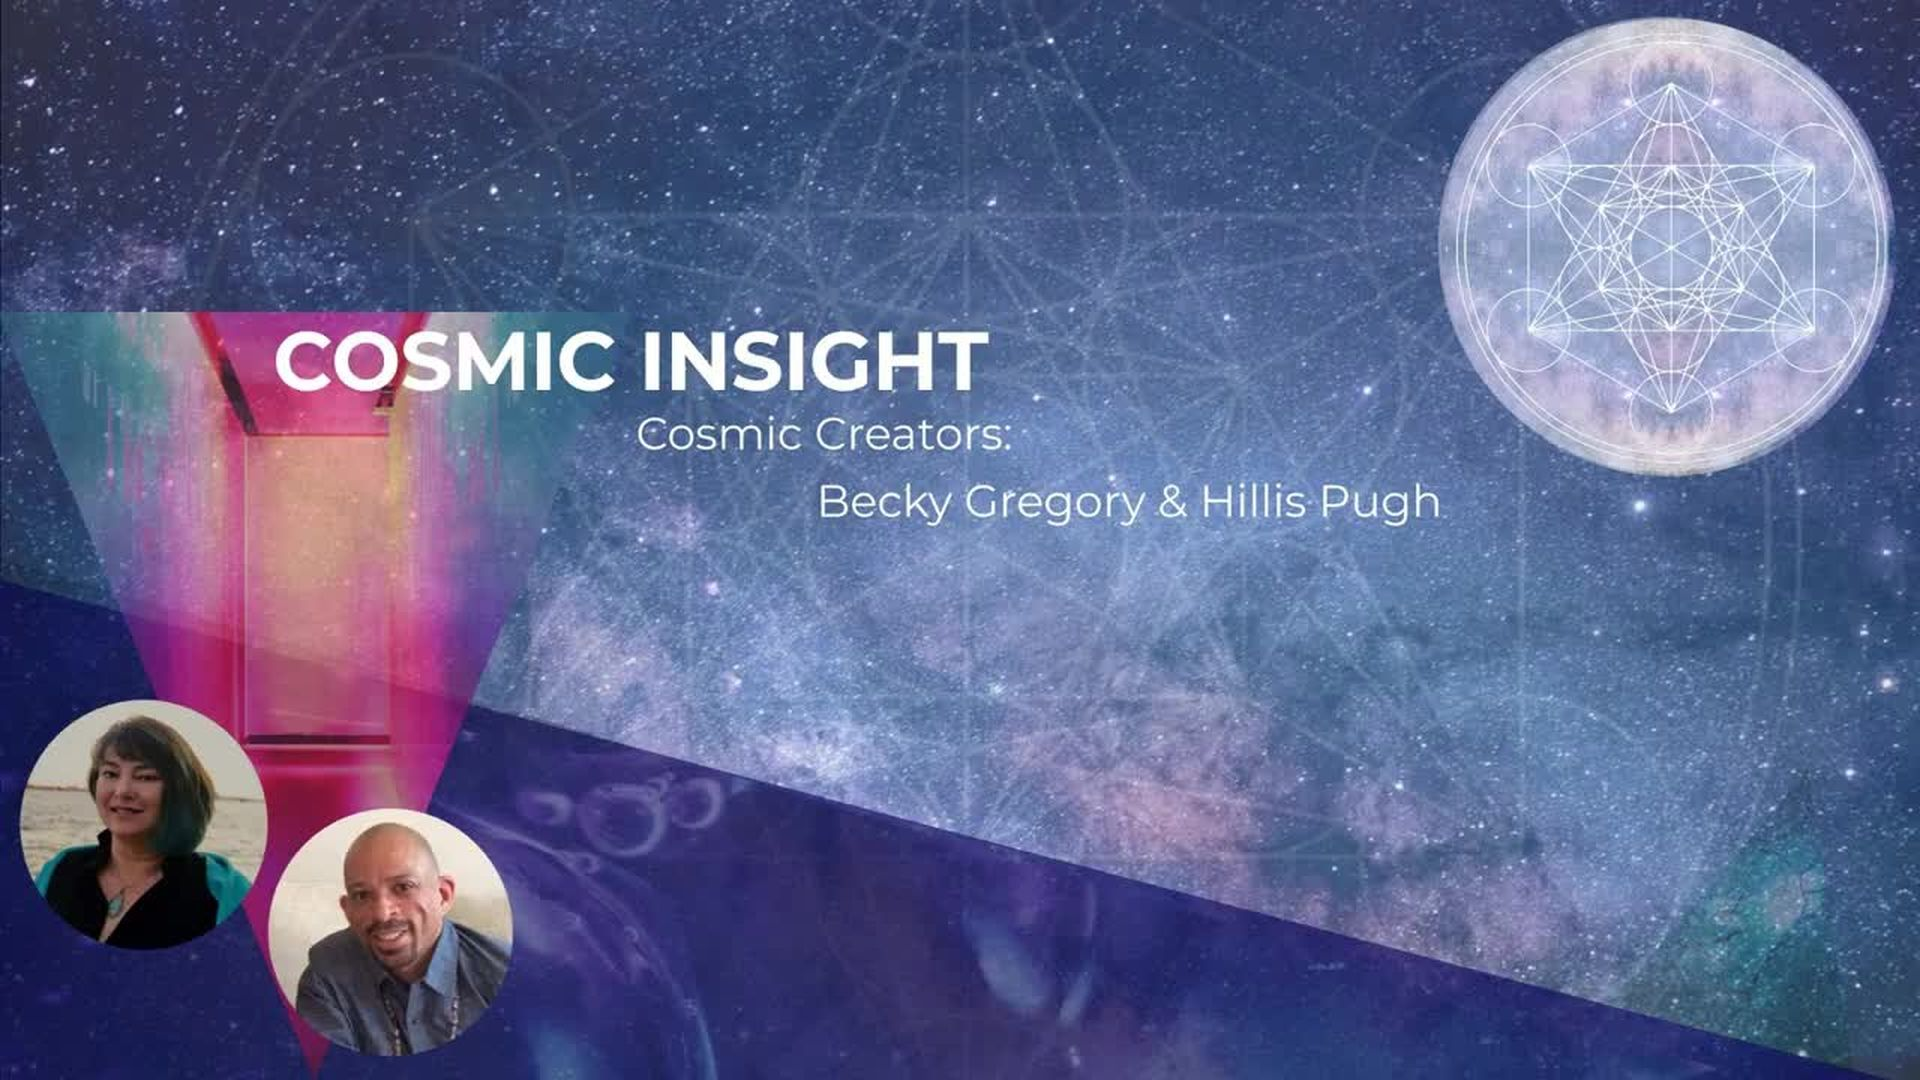 CONSCIOUSNESS AND THE FUTURE OF HUMANITY WITH CARL JOHAN CALLEMAN (COSMIC INSIGHT)